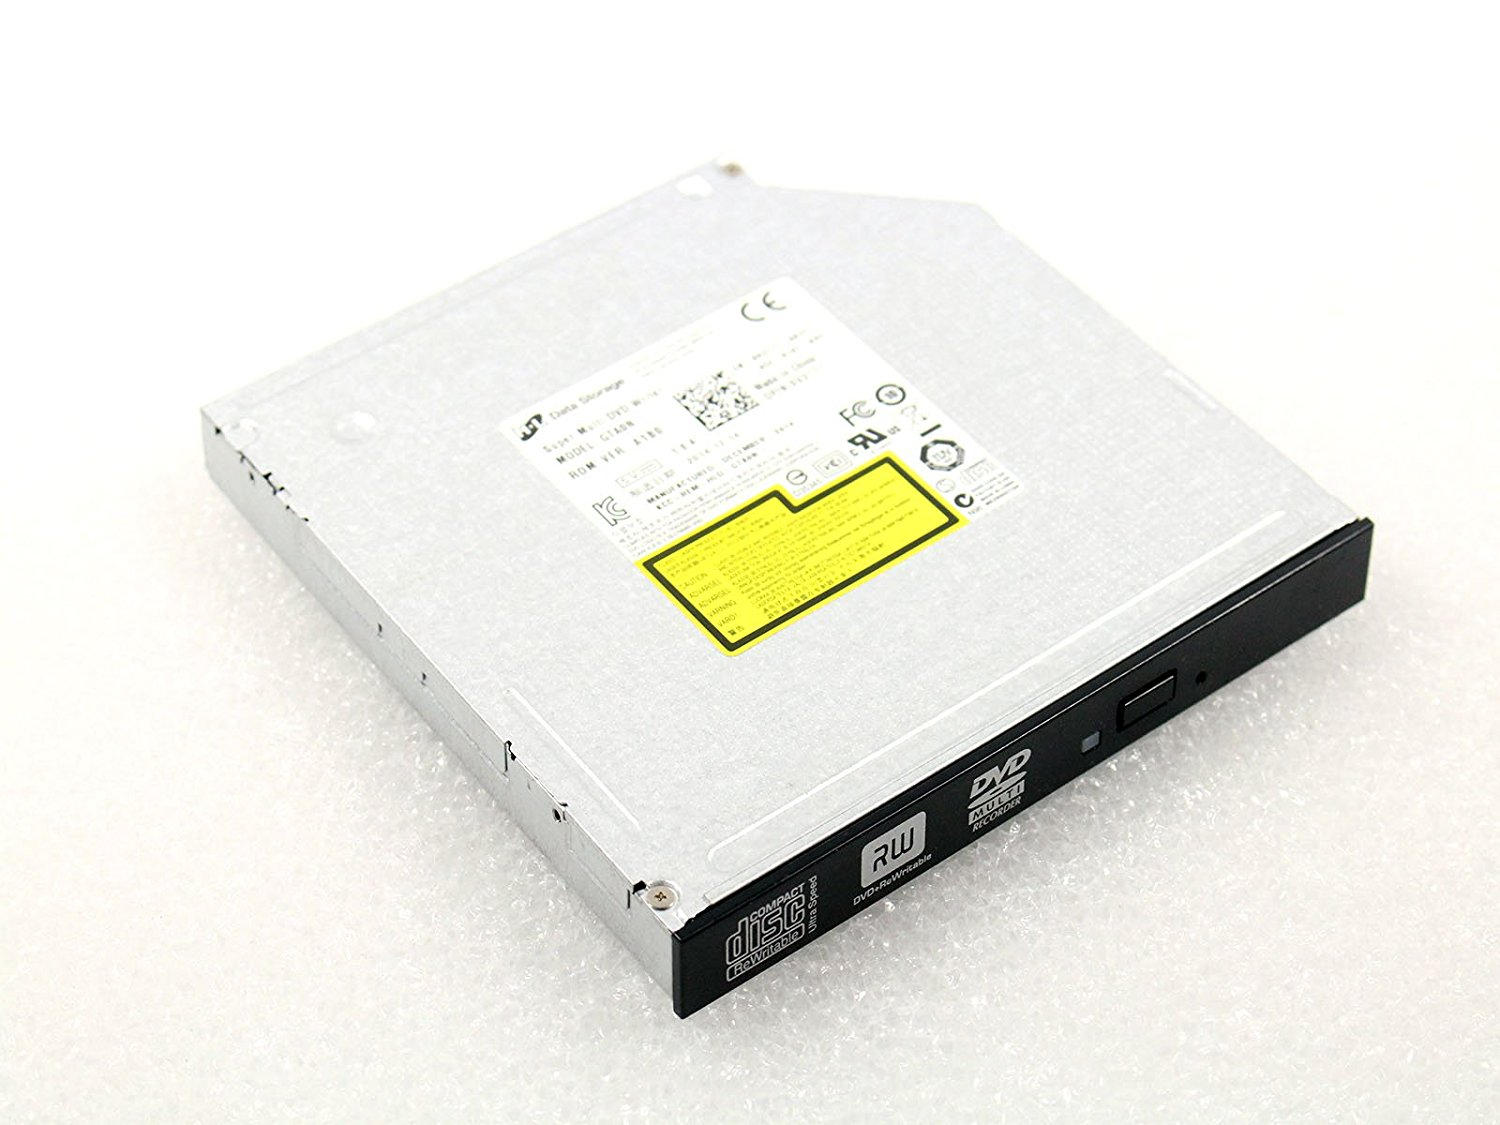 Dell Sff Sata Combo Dvd+Rw Cd Drive Mrp9Y Rpg4Y Vfg2N C8Kh4 D7D66 V3171